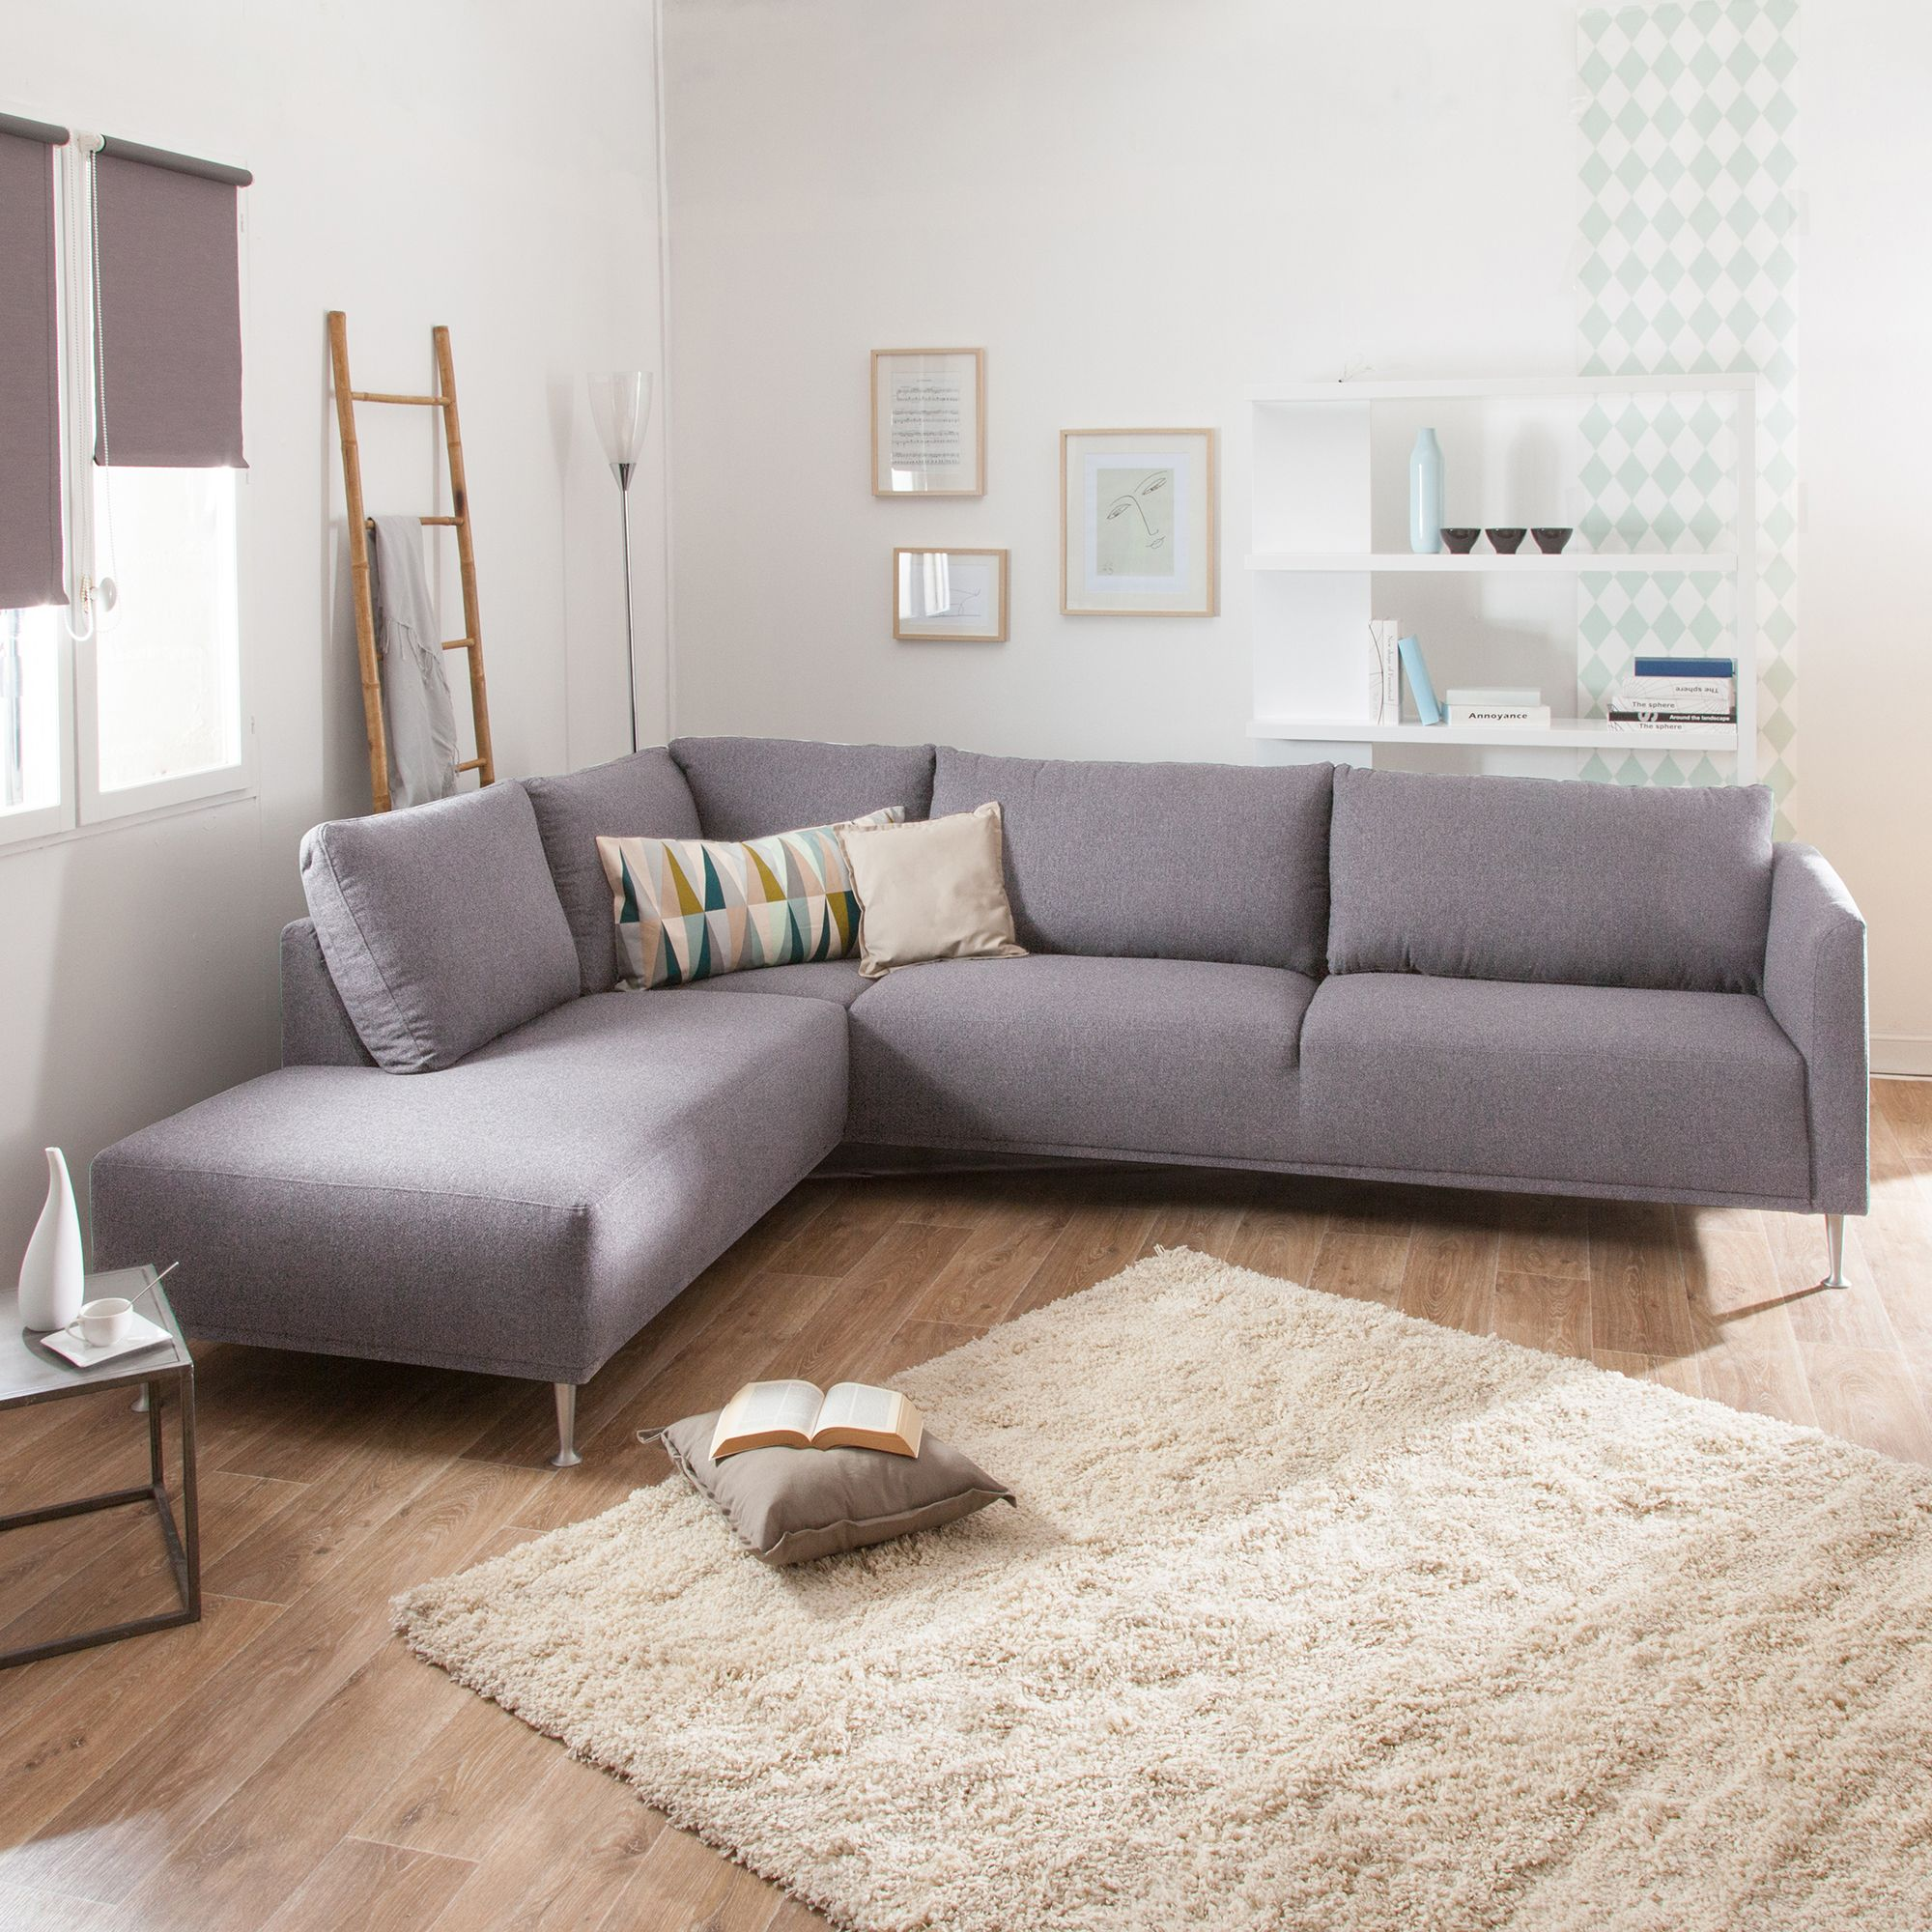 Canape D Angle En Tissu Dossier Dehoussable Olympe Canape Angle